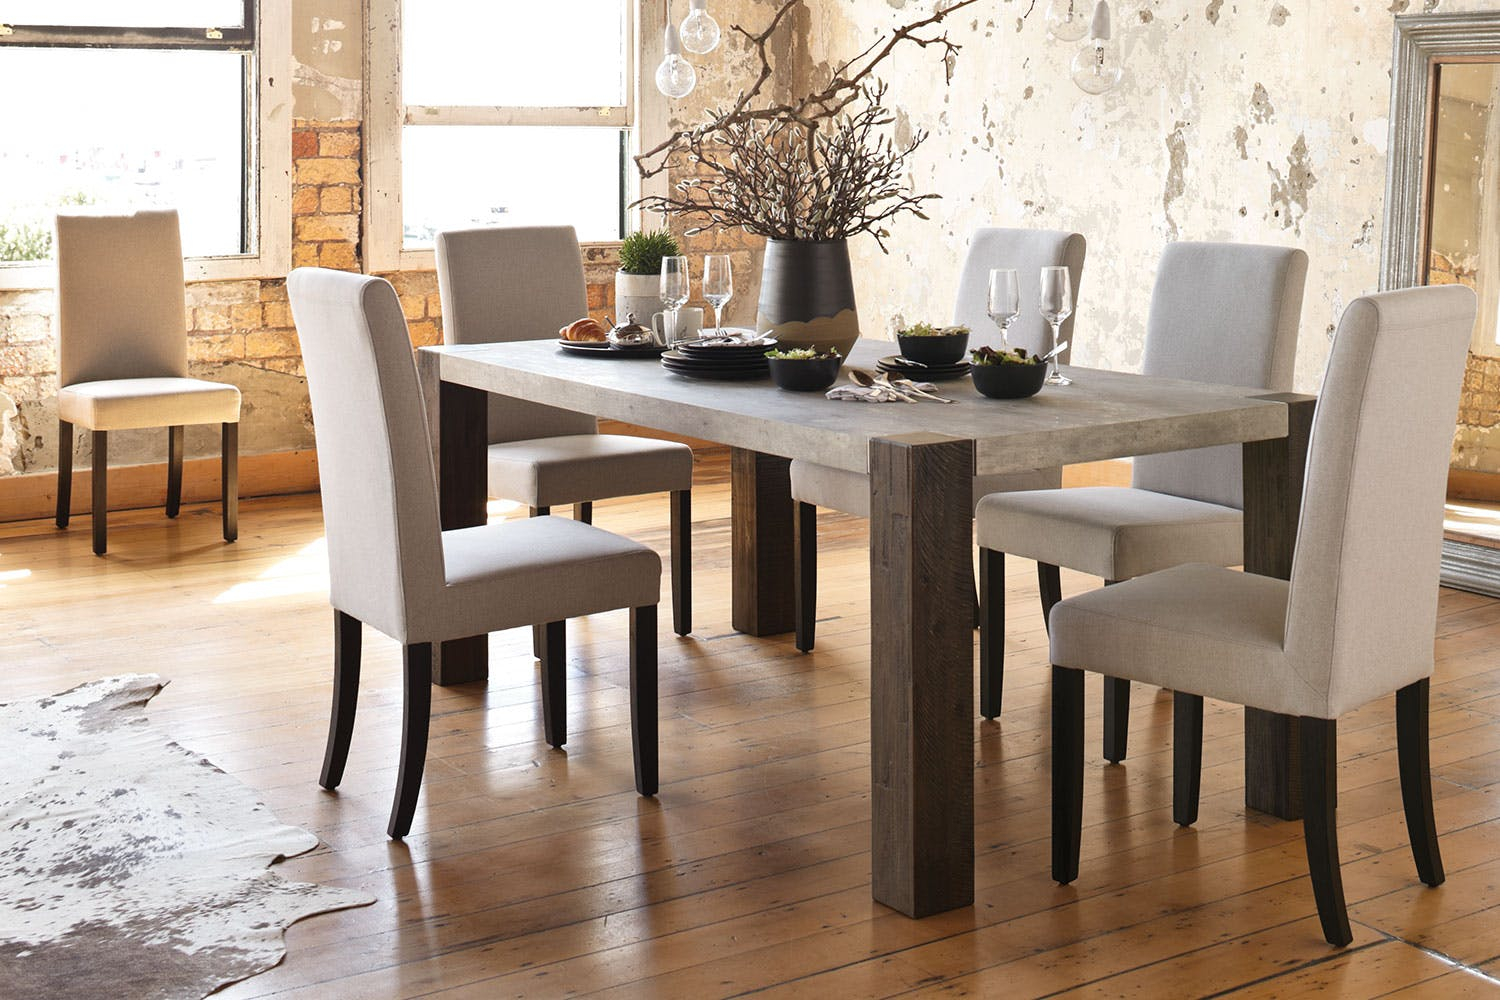 Faro dining table by la z boy harvey norman new zealand for Dining room tables harvey norman